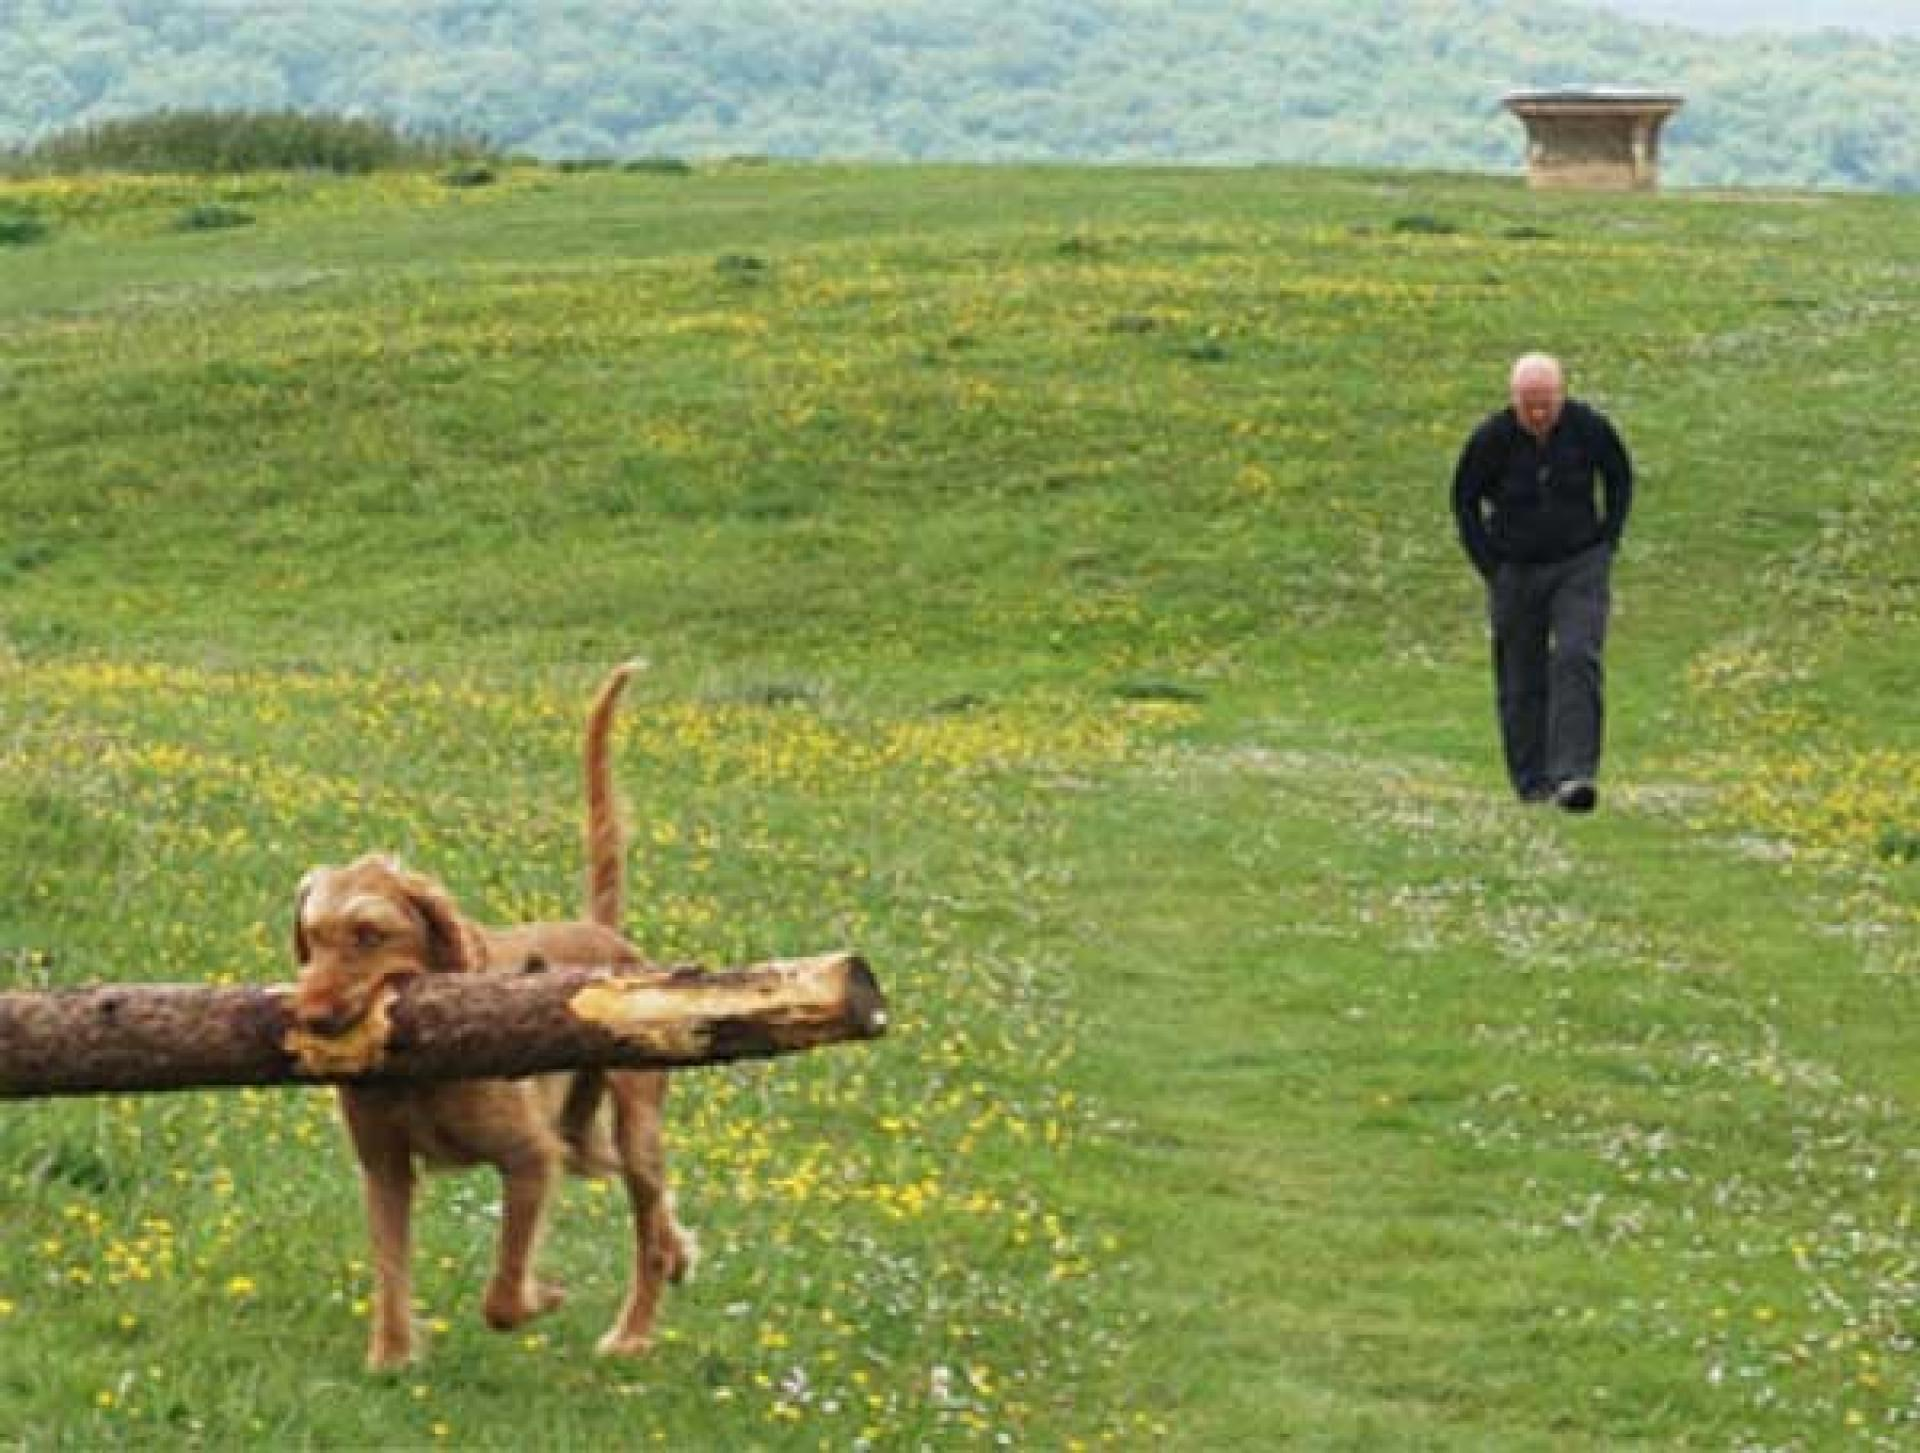 A dog carries a stick on a dog-friendly walking holiday